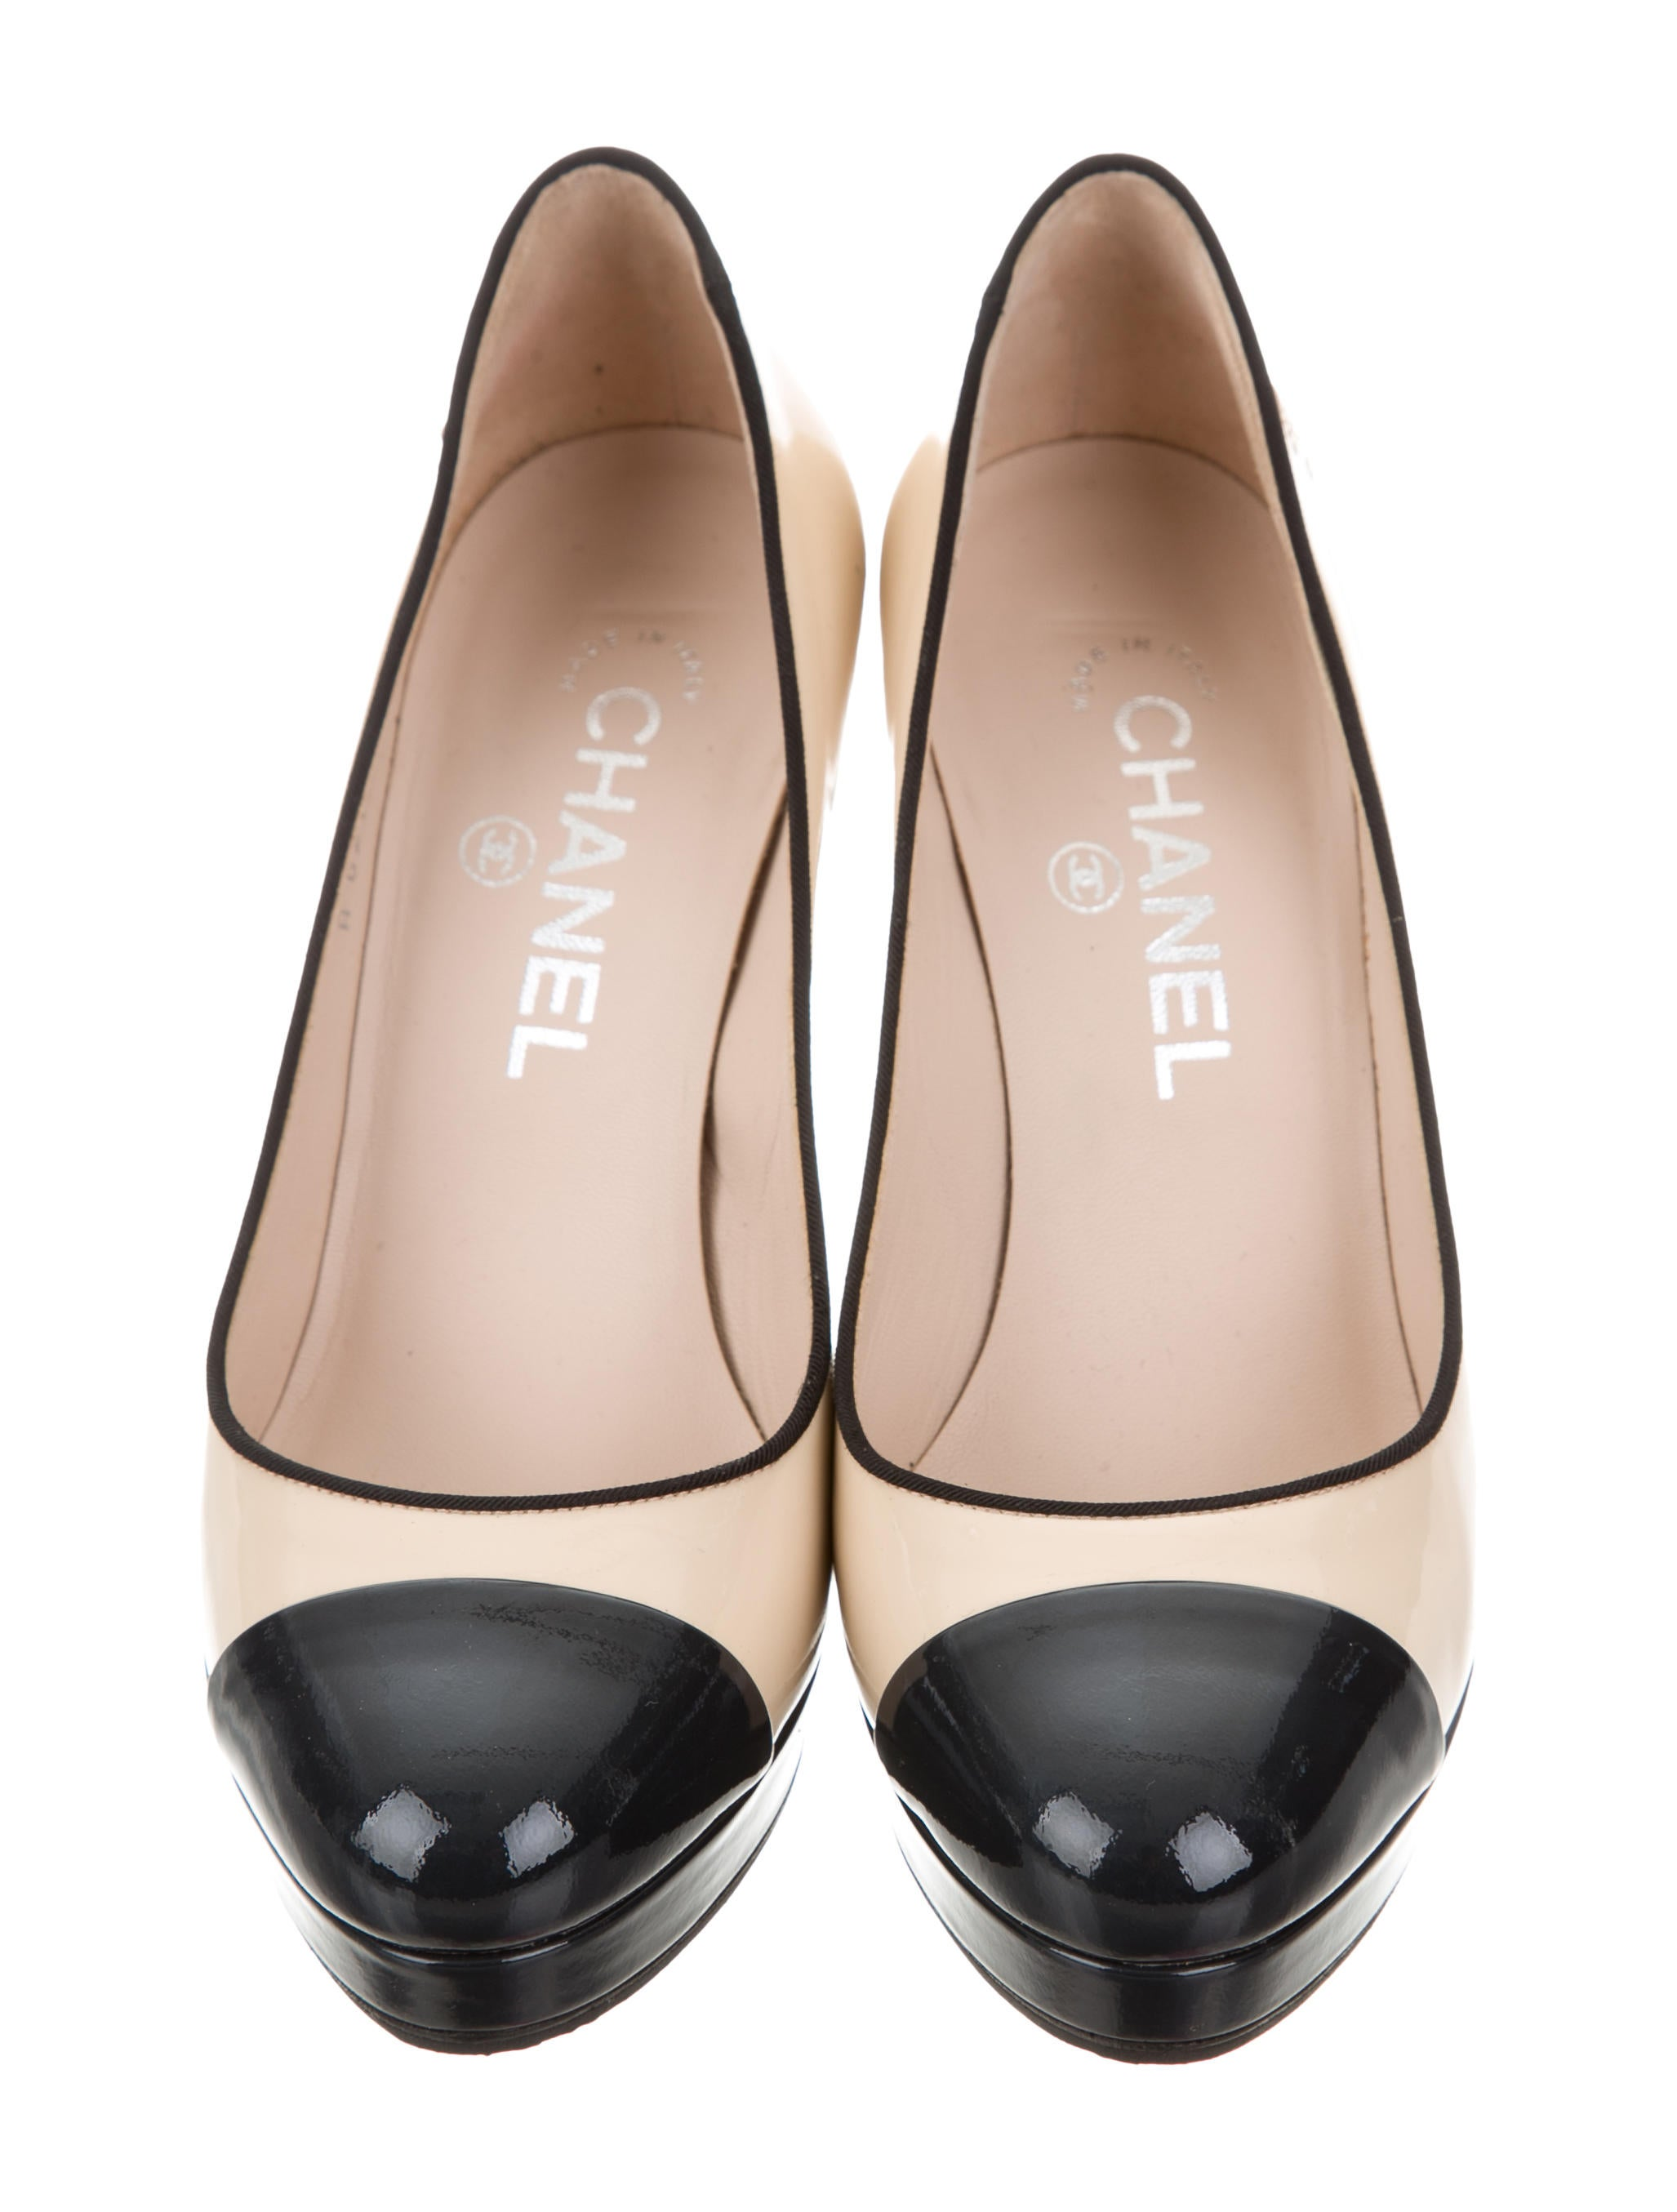 Chanel Cc Cap Toe Pumps Shoes Cha187391 The Realreal